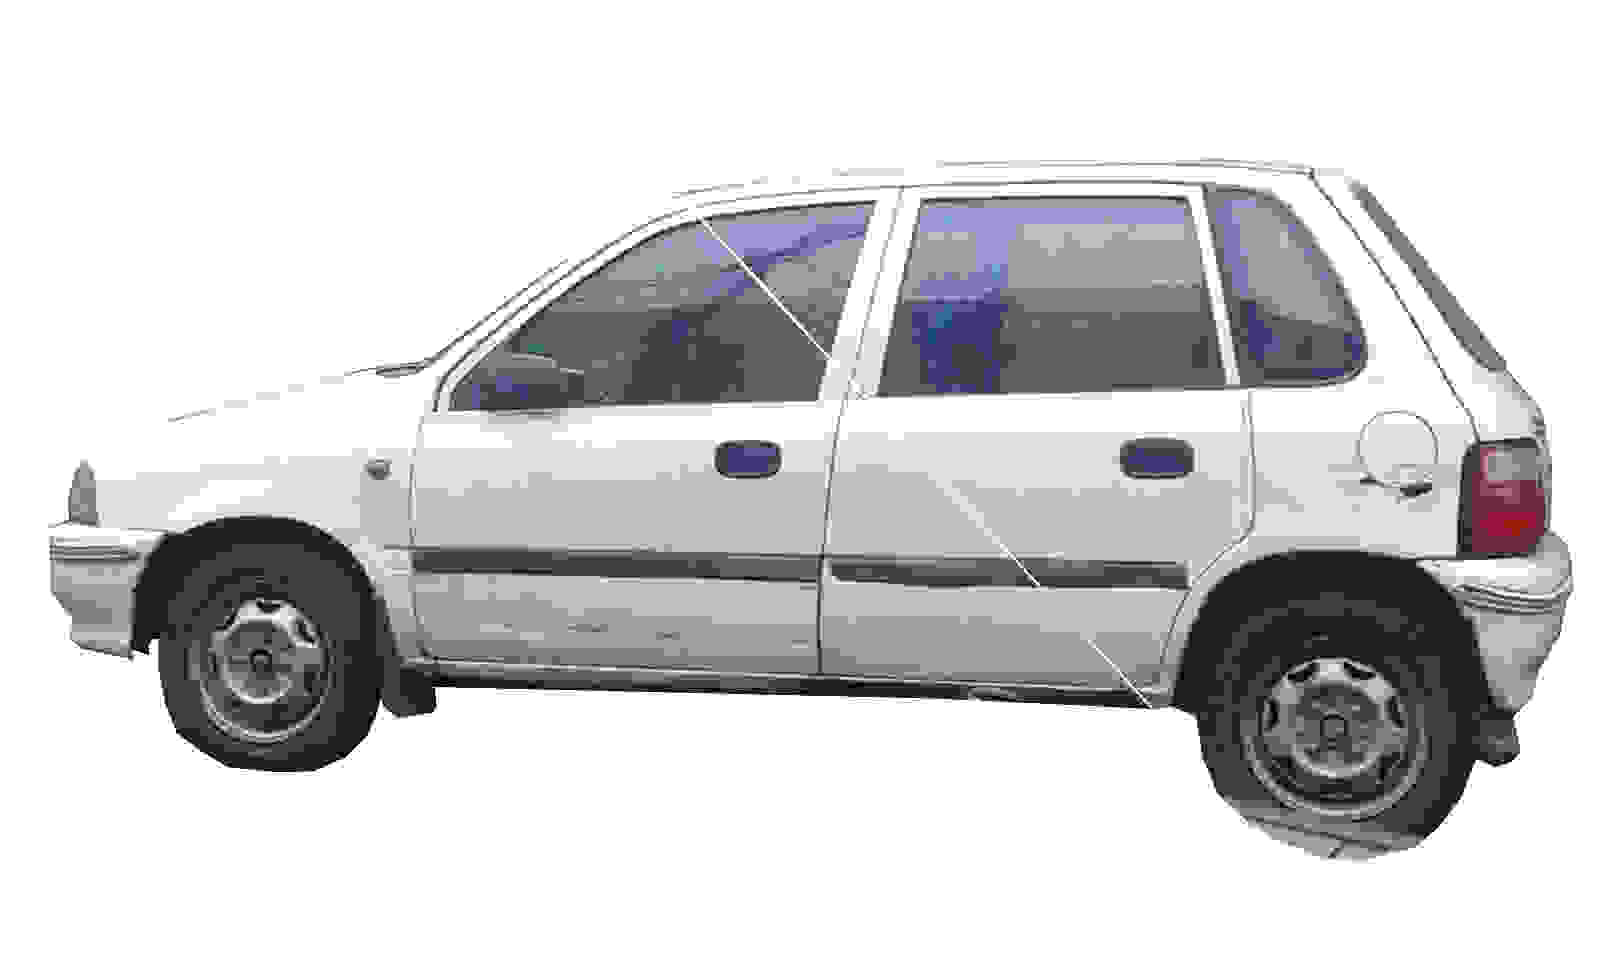 Maruti 800 scrap price, 15 year old Maruti 800